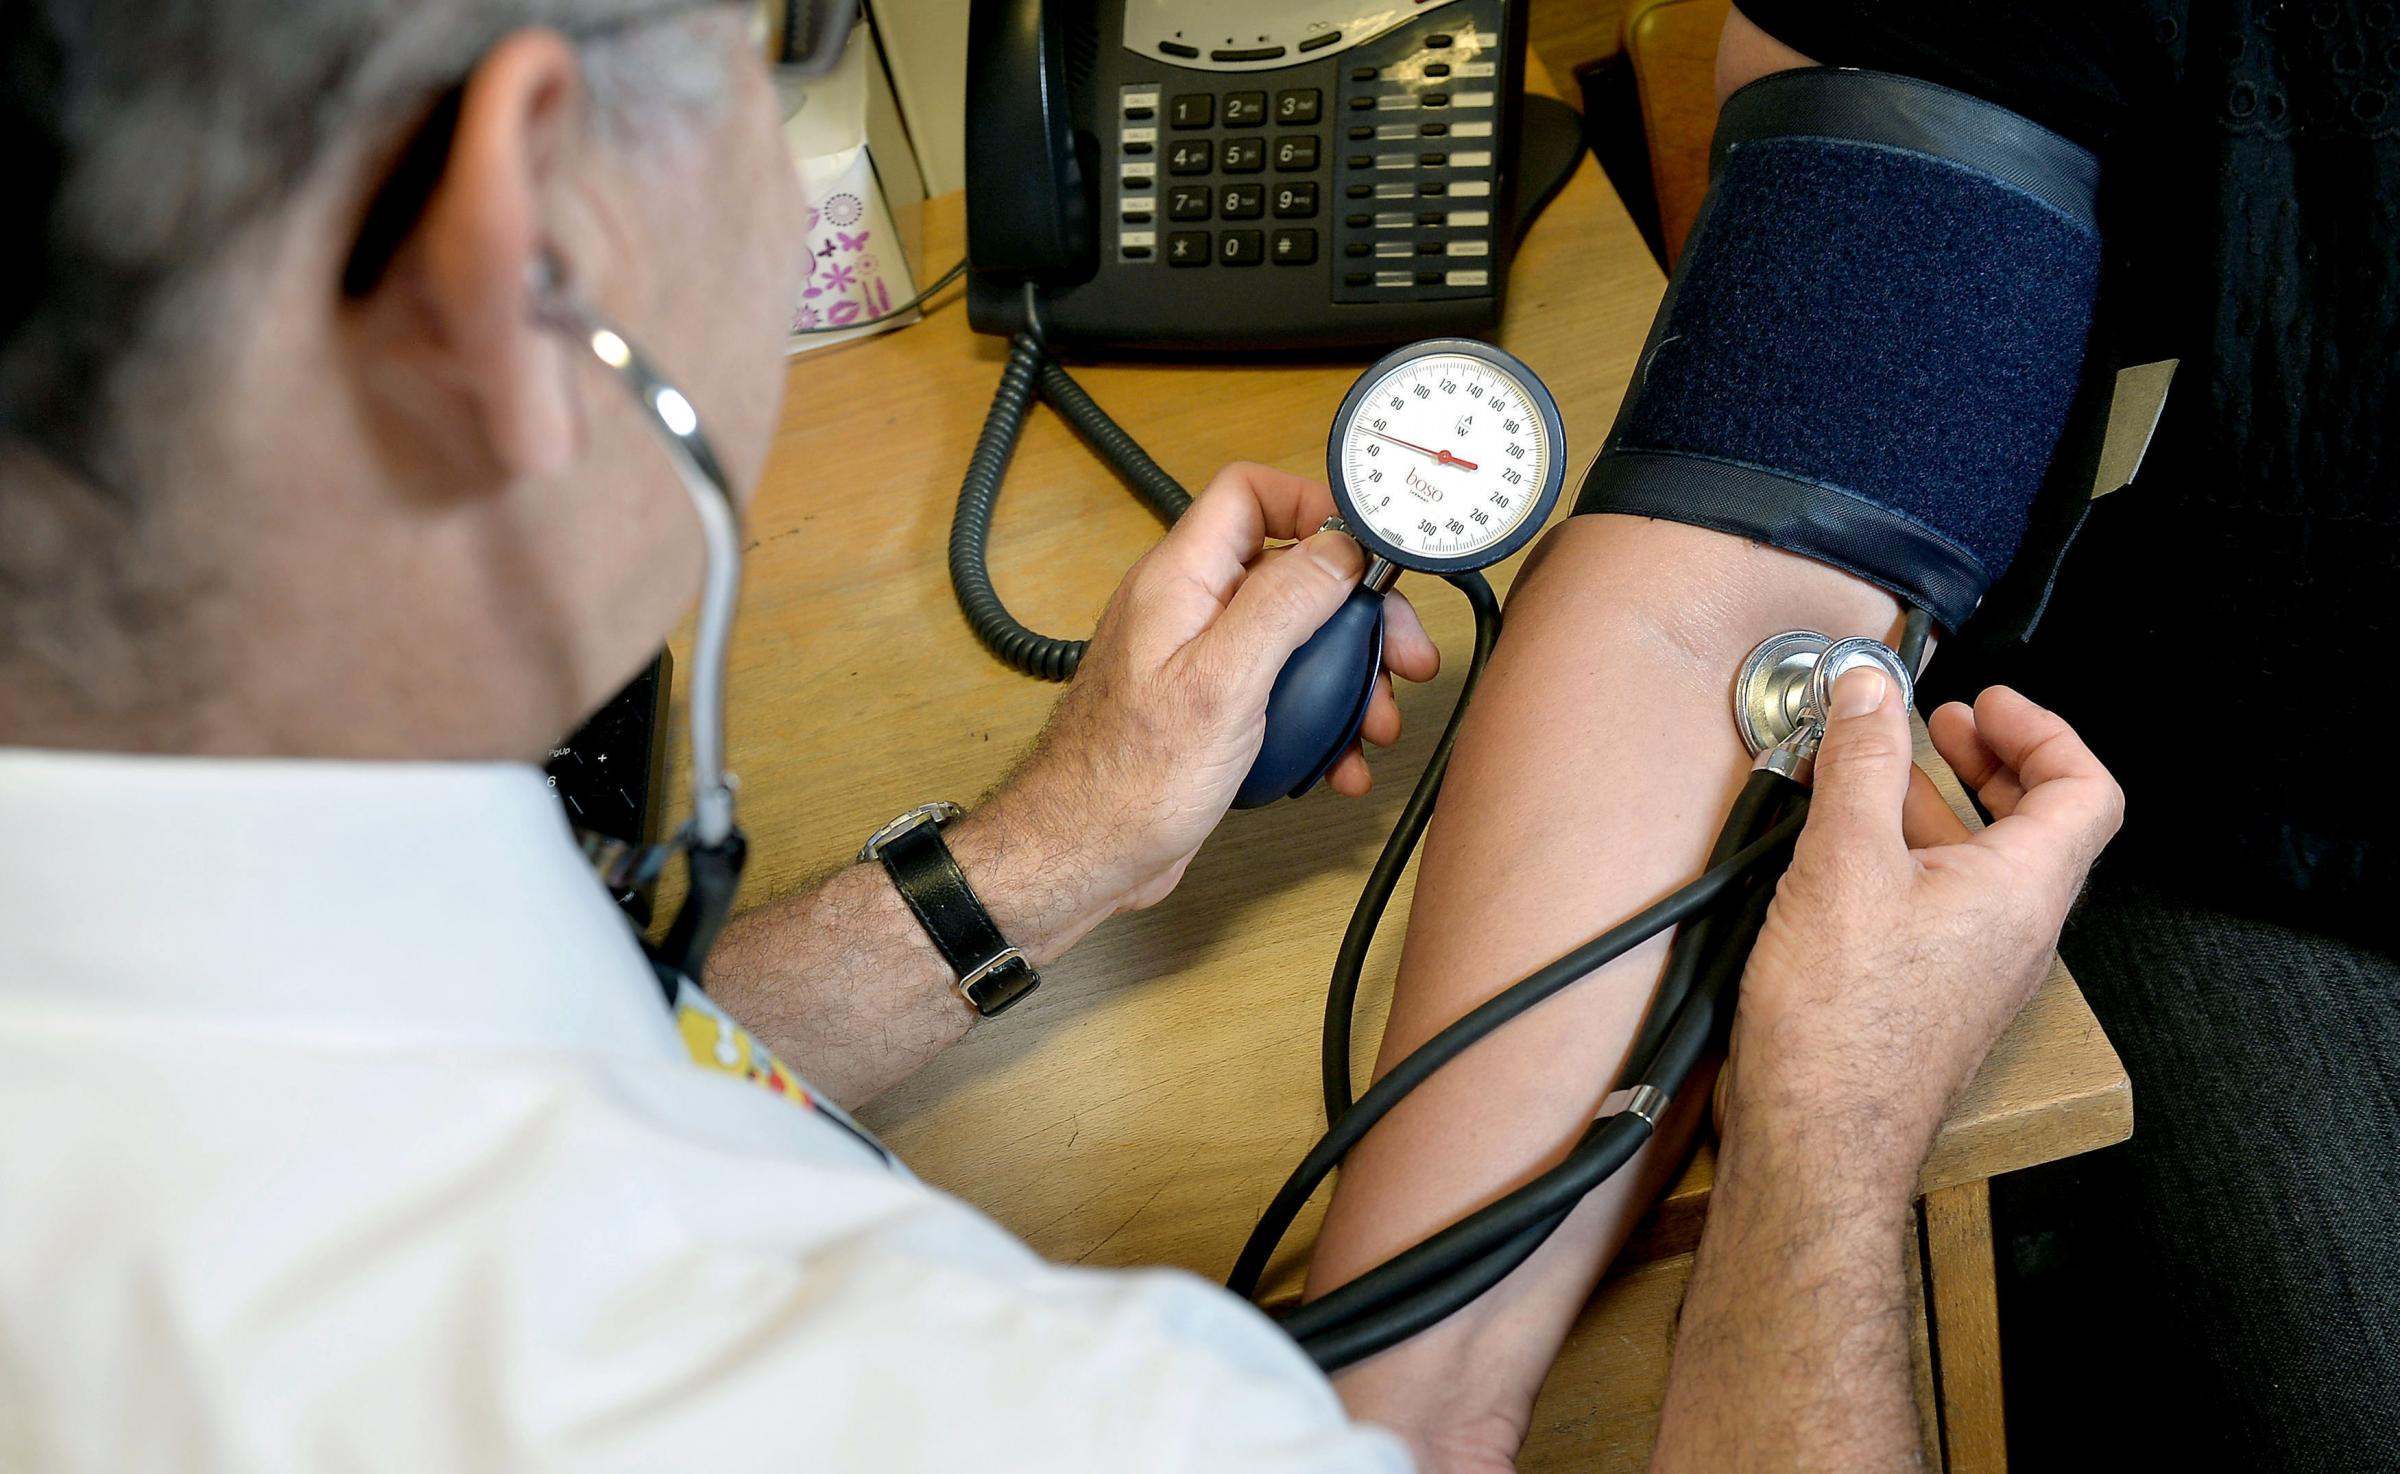 The survey included 140 doctors currently working in Scotland